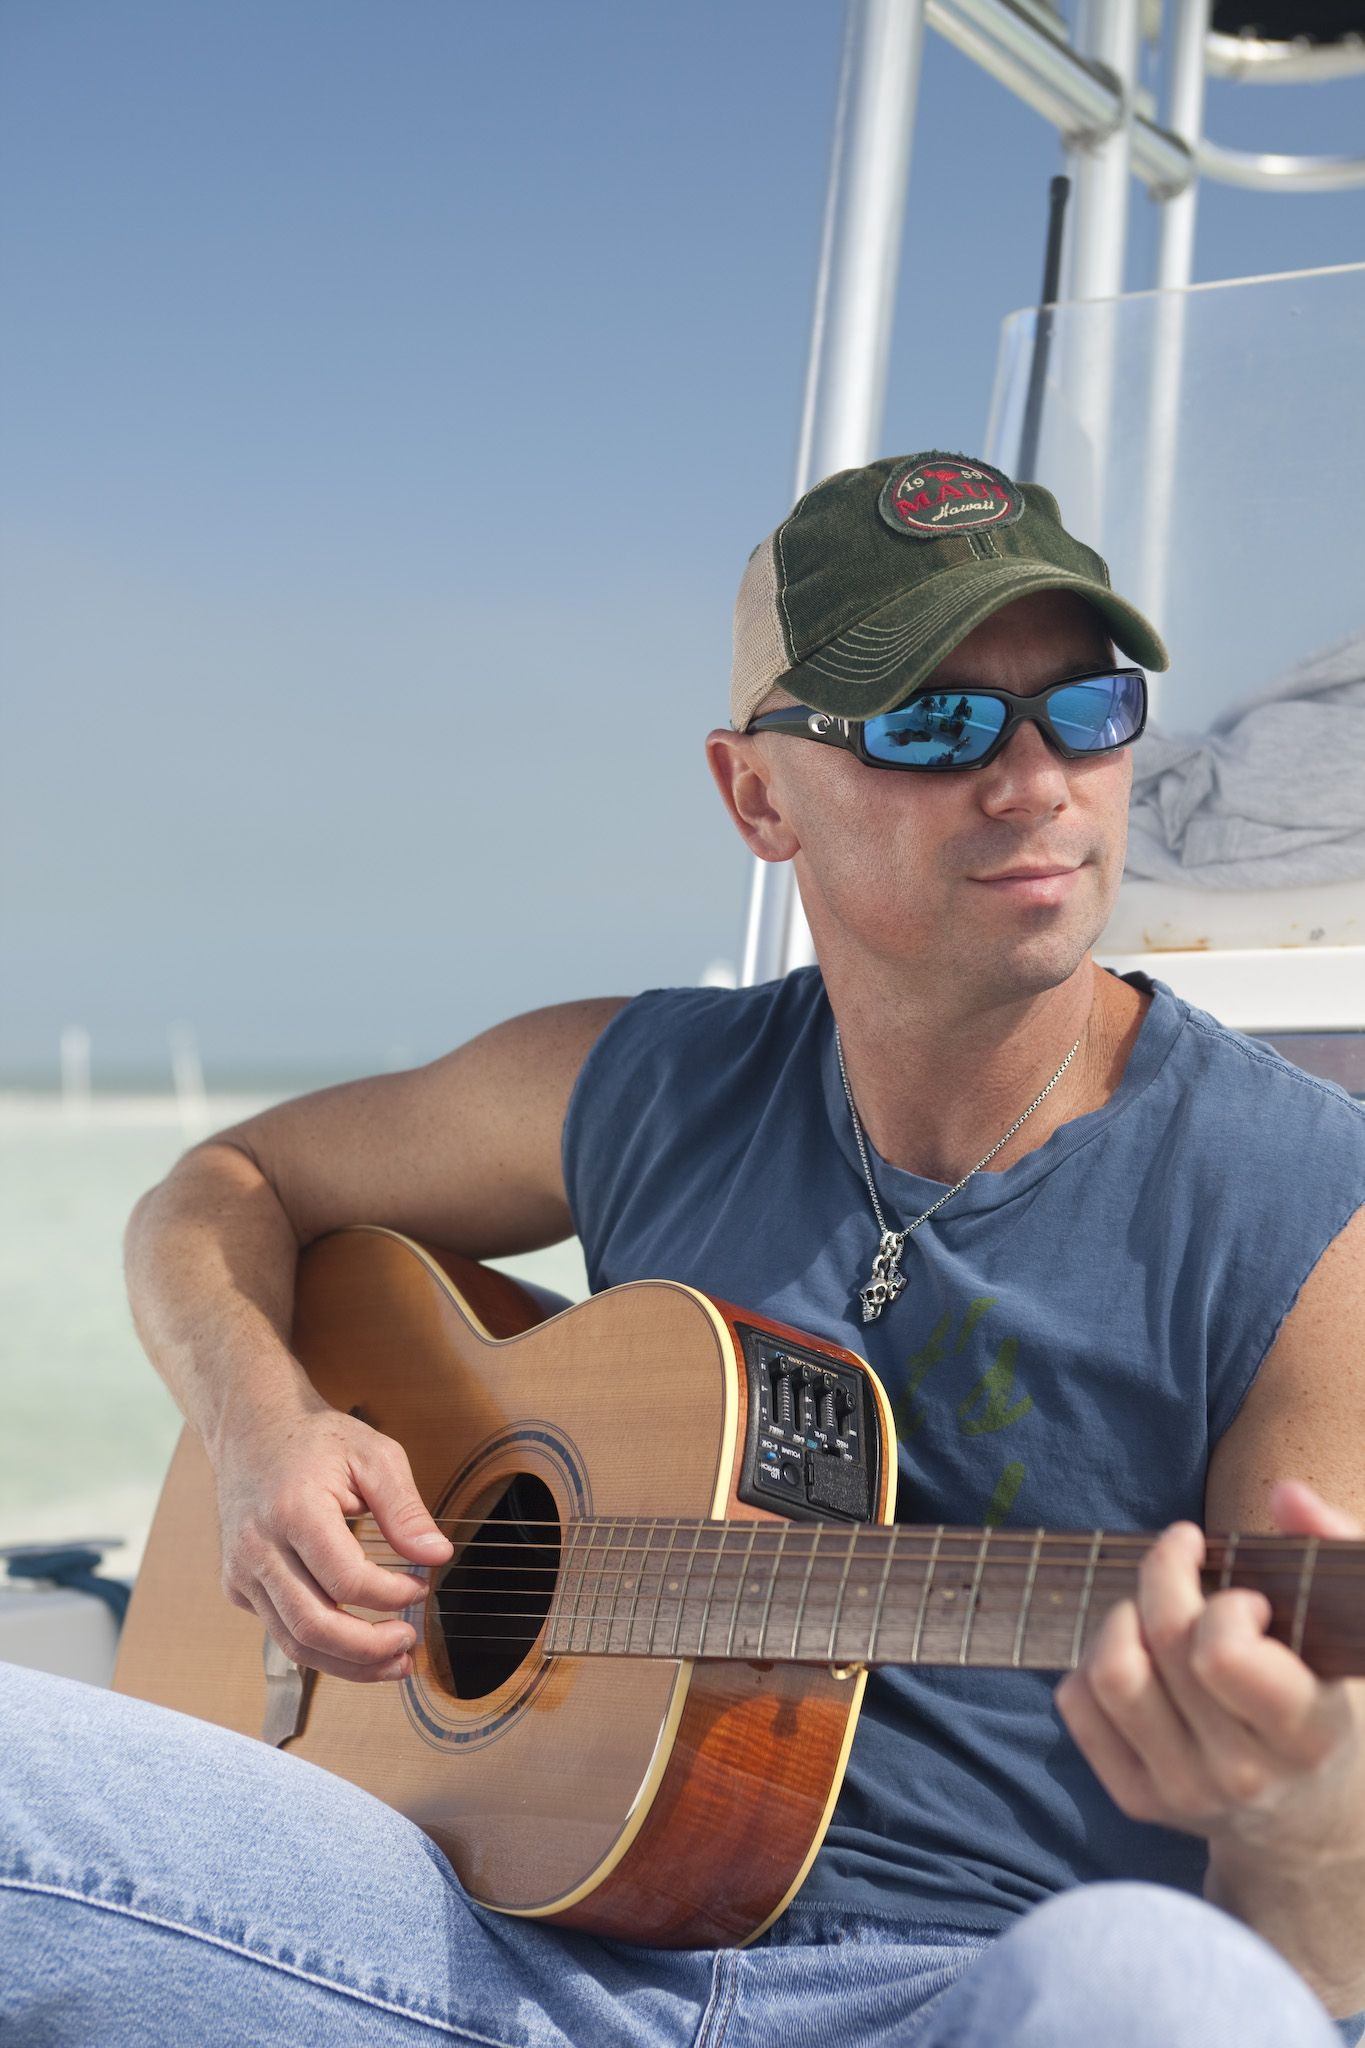 Google Image Result for http://countryfannetwork.com/wp-content/uploads/2011/03/Kenny-Chesney-Supports-CCA.jpg